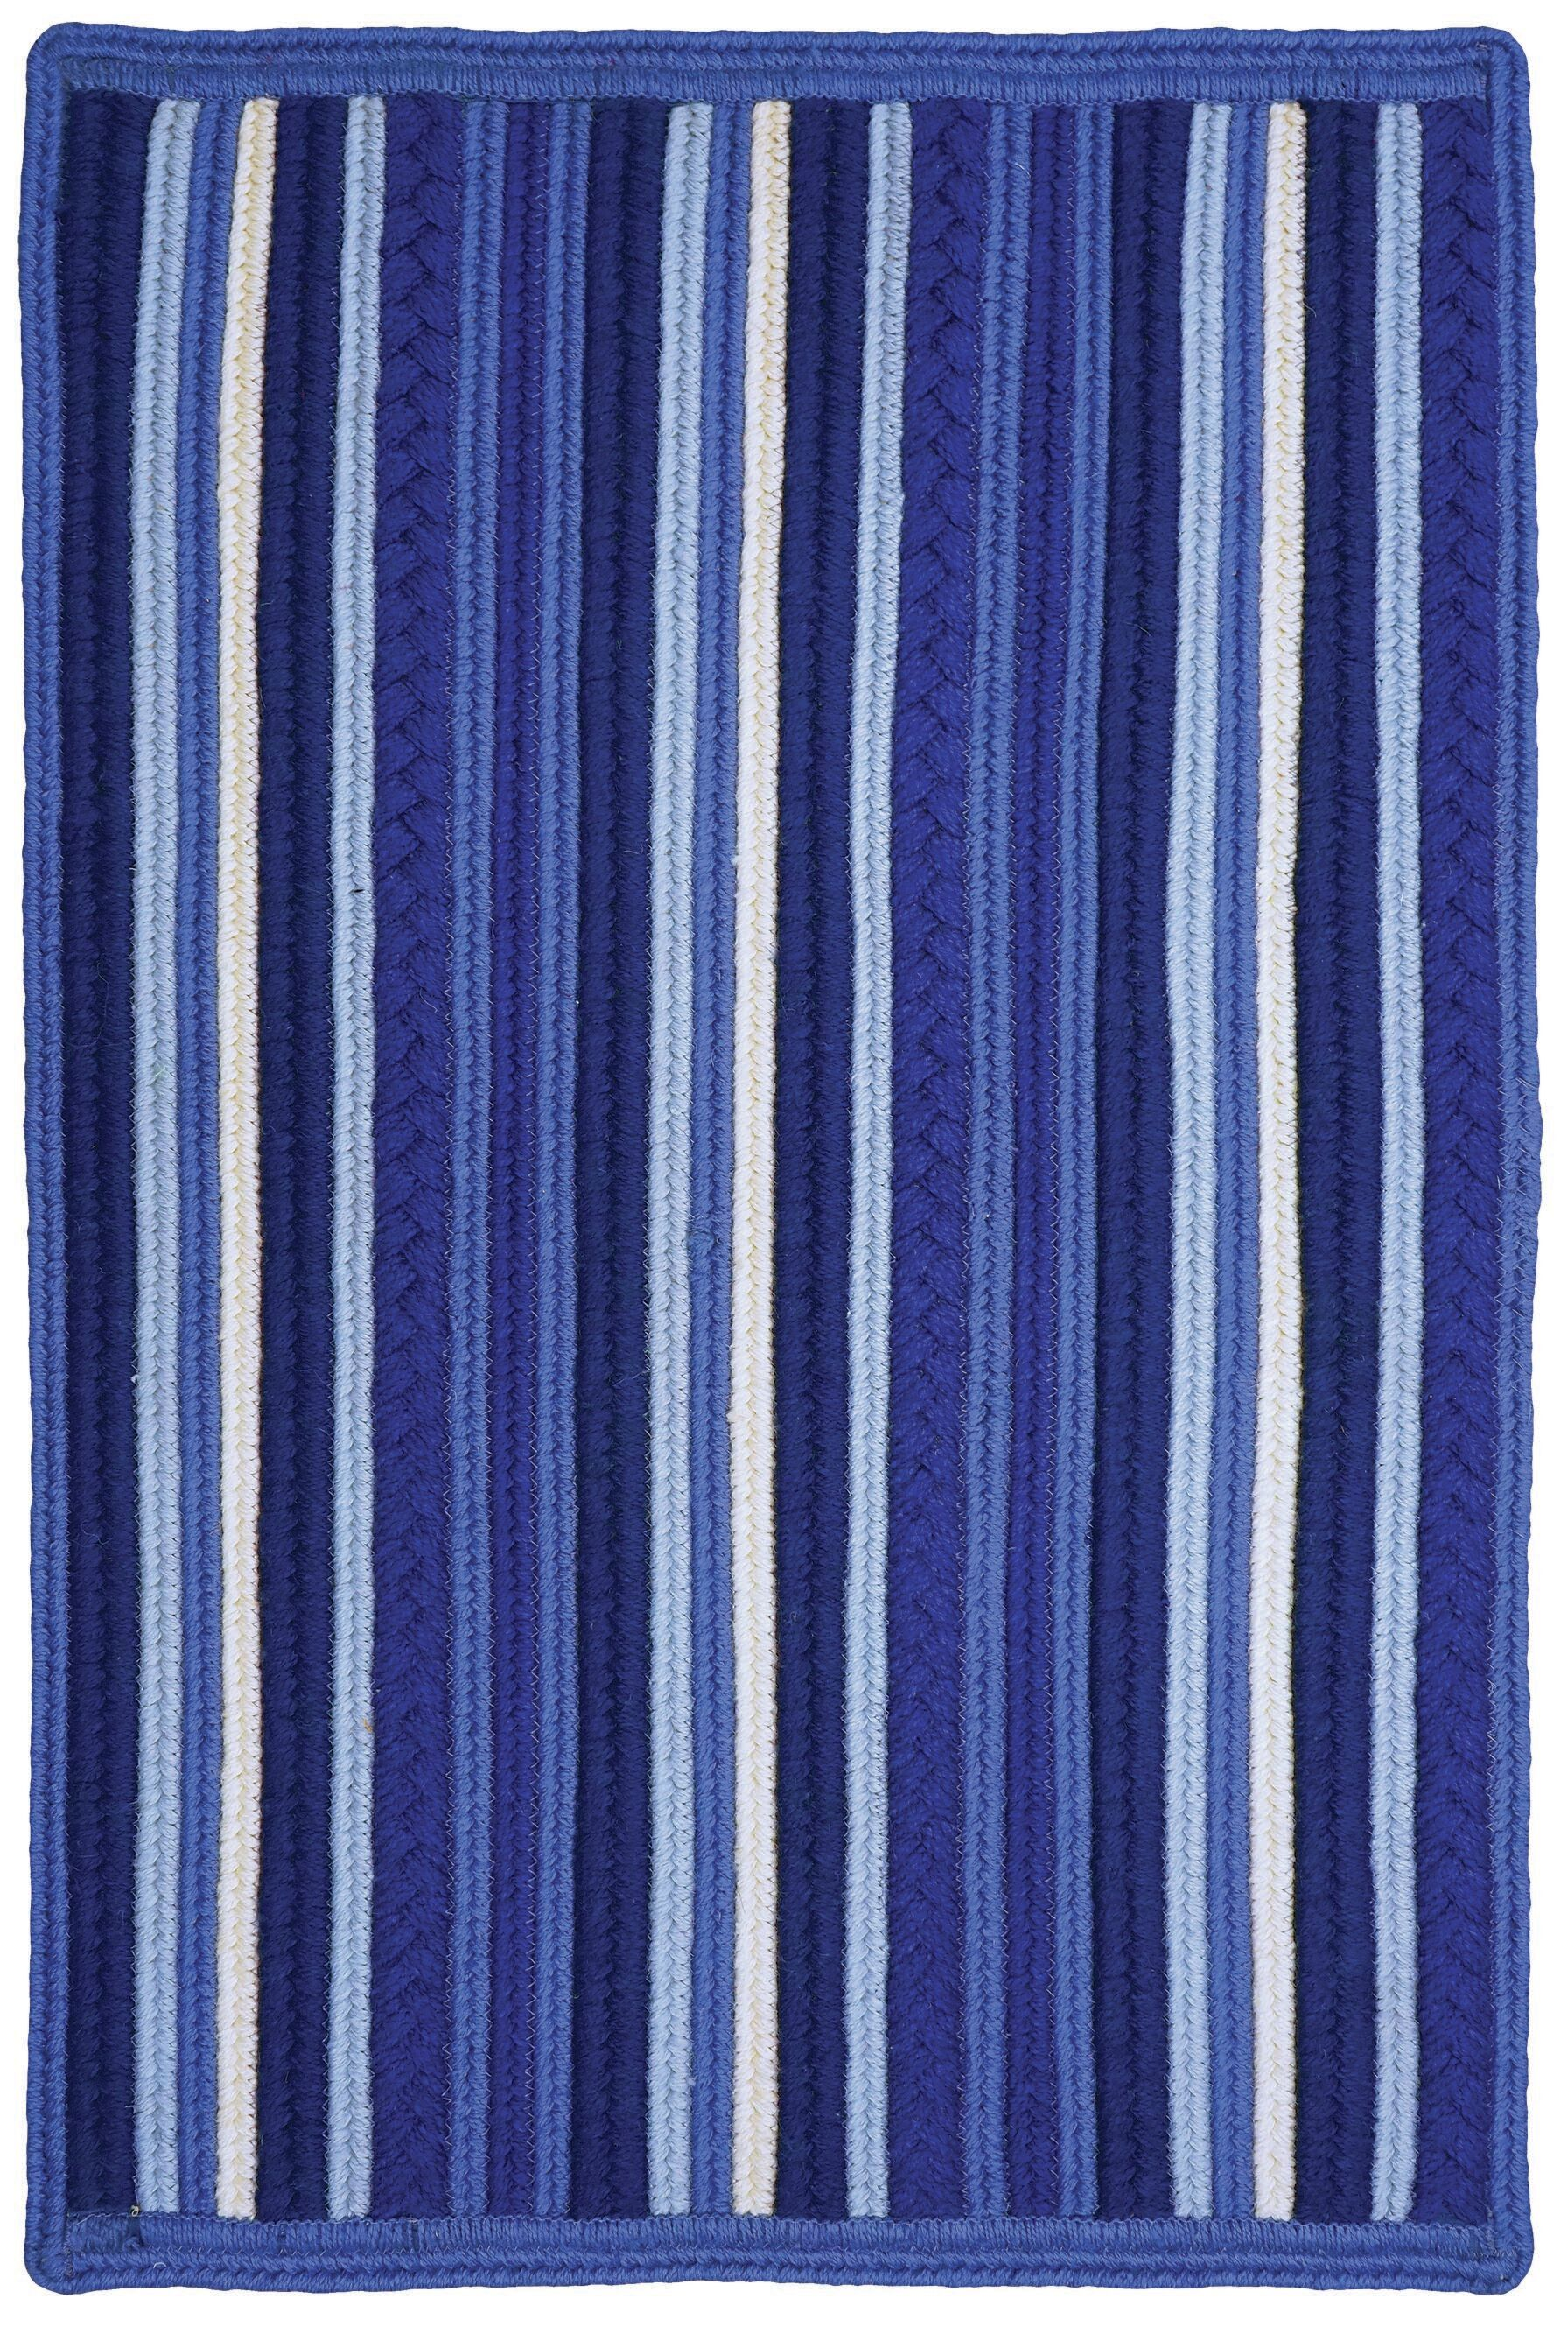 Portsmouth Blue Indoor/Outdoor Area Rug Rug Size: 4' x 6'